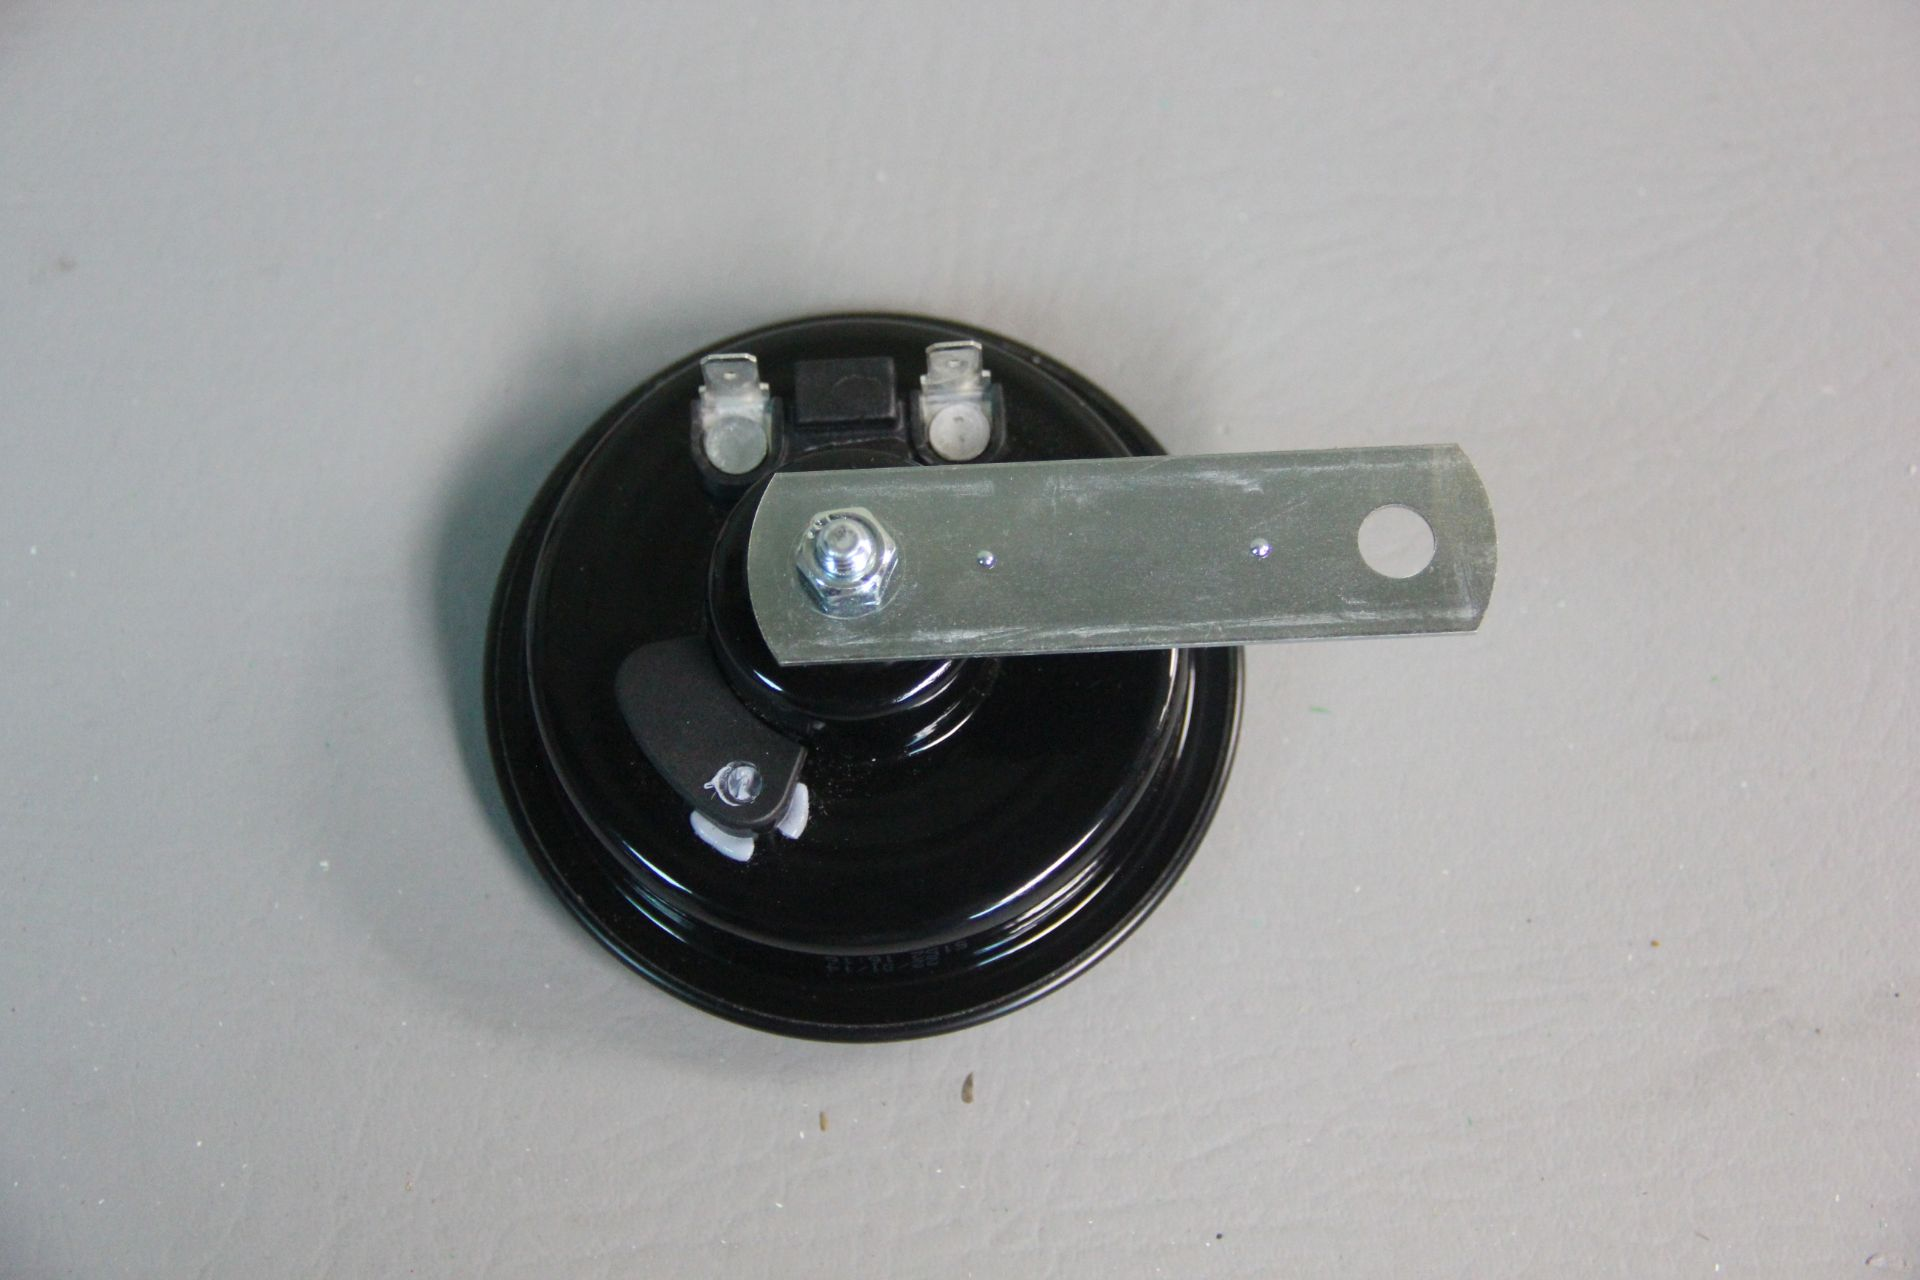 NEW SEGER INDUSTRIAL DISC SAFETY HORN - Image 2 of 3